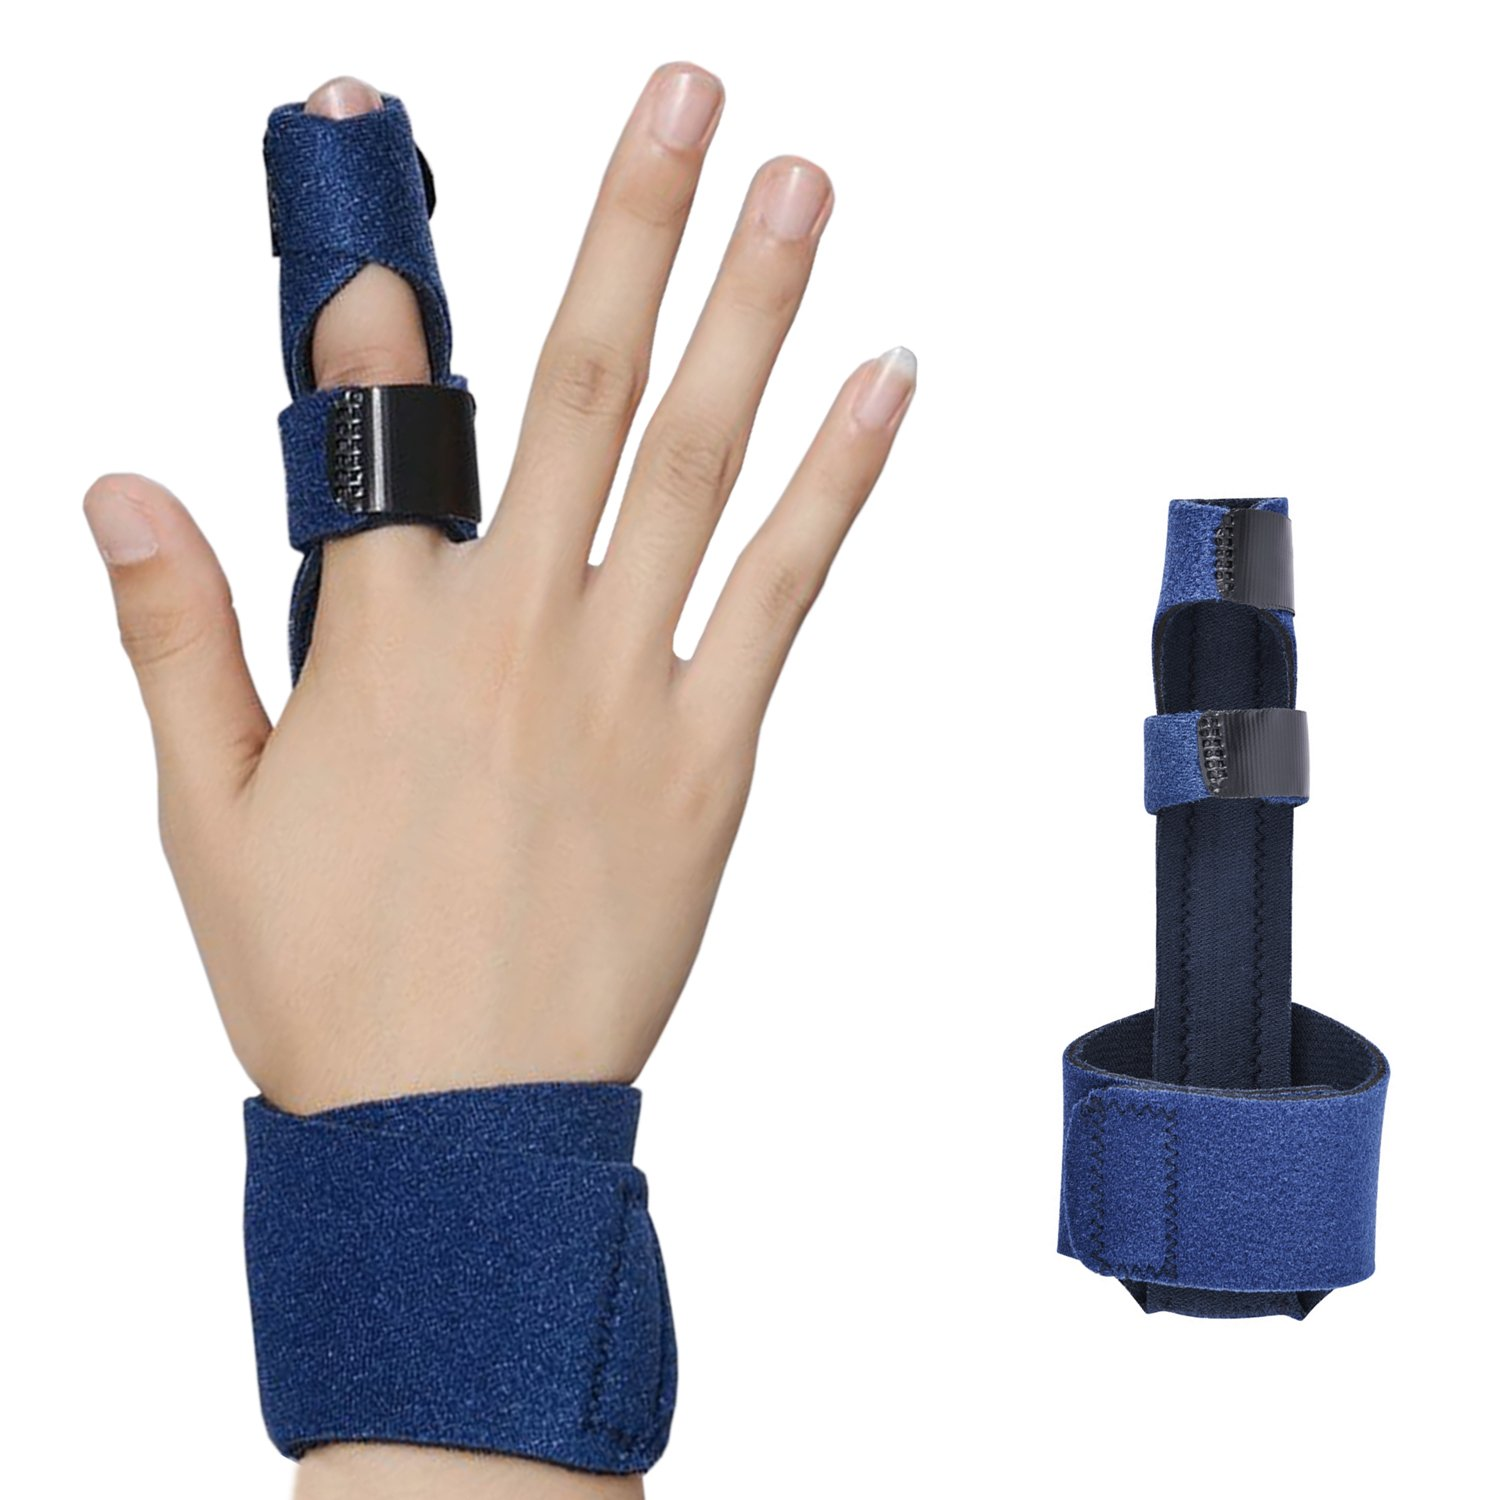 Finger Splint - Corpower Finger Extension Splint for Trigger Finger, Mallet Finger, Finger Knuckle Immobilization, Finger Fractures, Pain Relief from Stenosing Tenosynovitis - Finger Brace for Trigger